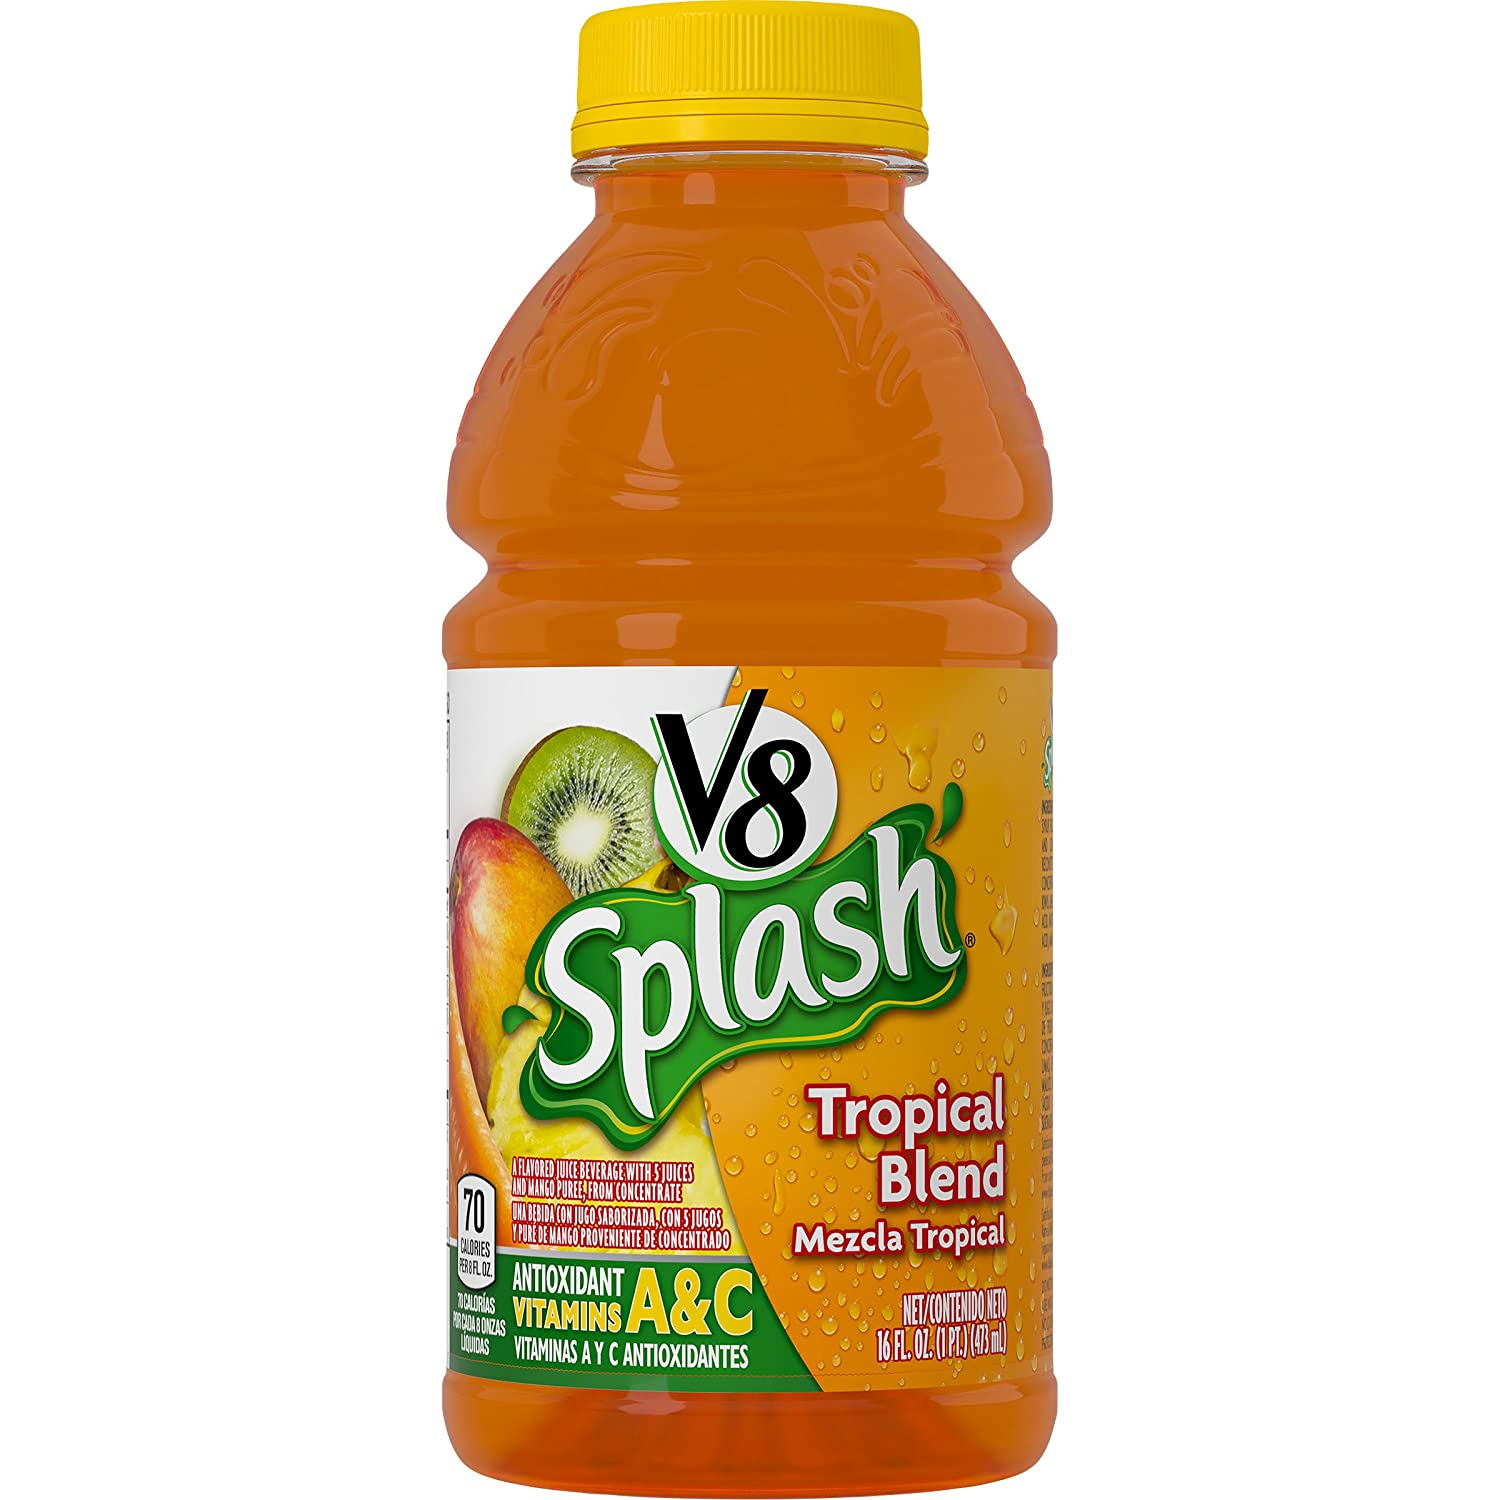 Amazon.com : V8 Splash, Berry Blend, 16 Ounce (Pack of 24) : Juice : Grocery & Gourmet Food